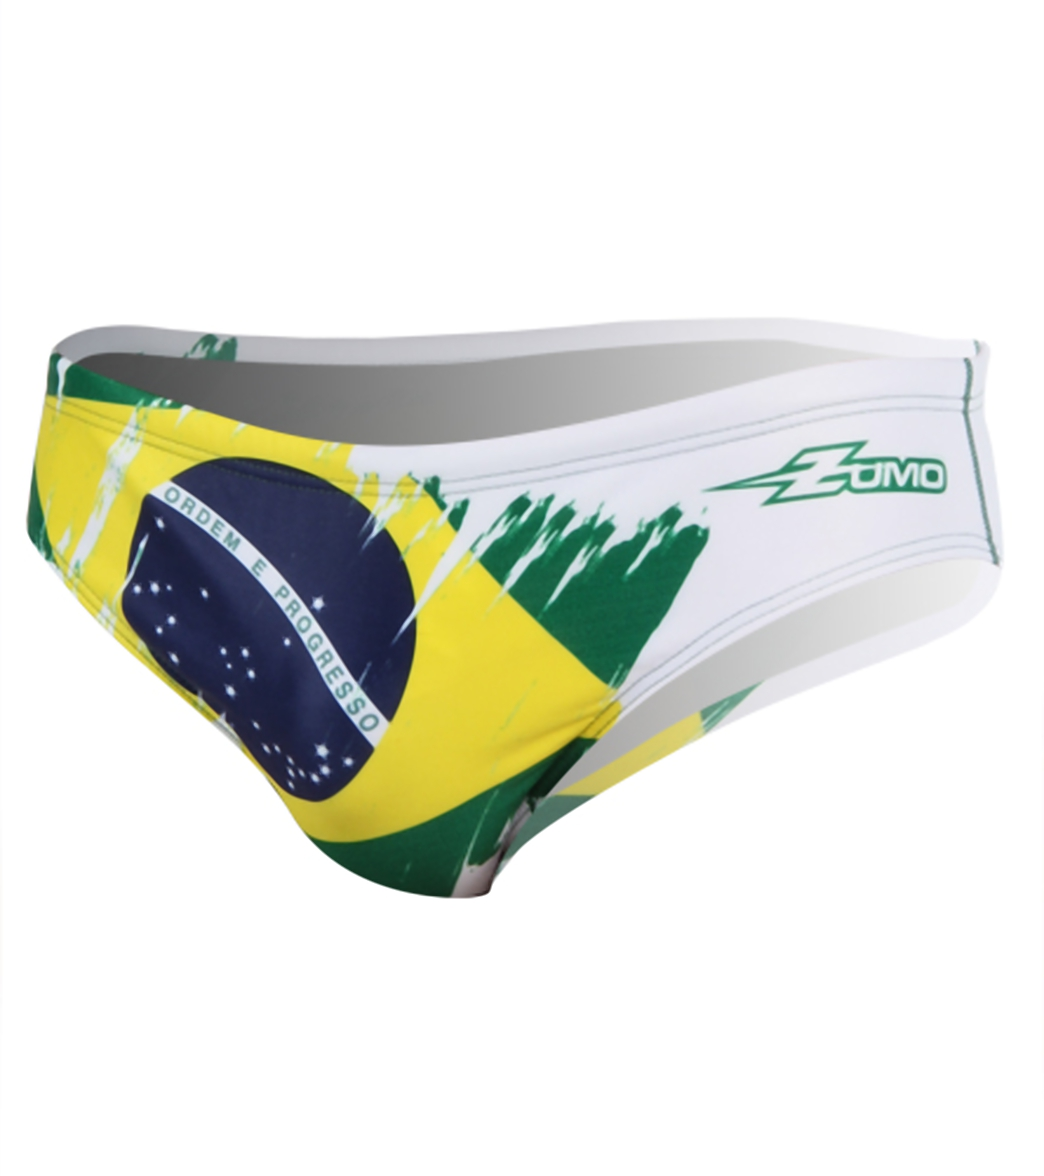 65e7a1e36d Zumo Brazil Water Polo Suit at SwimOutlet.com